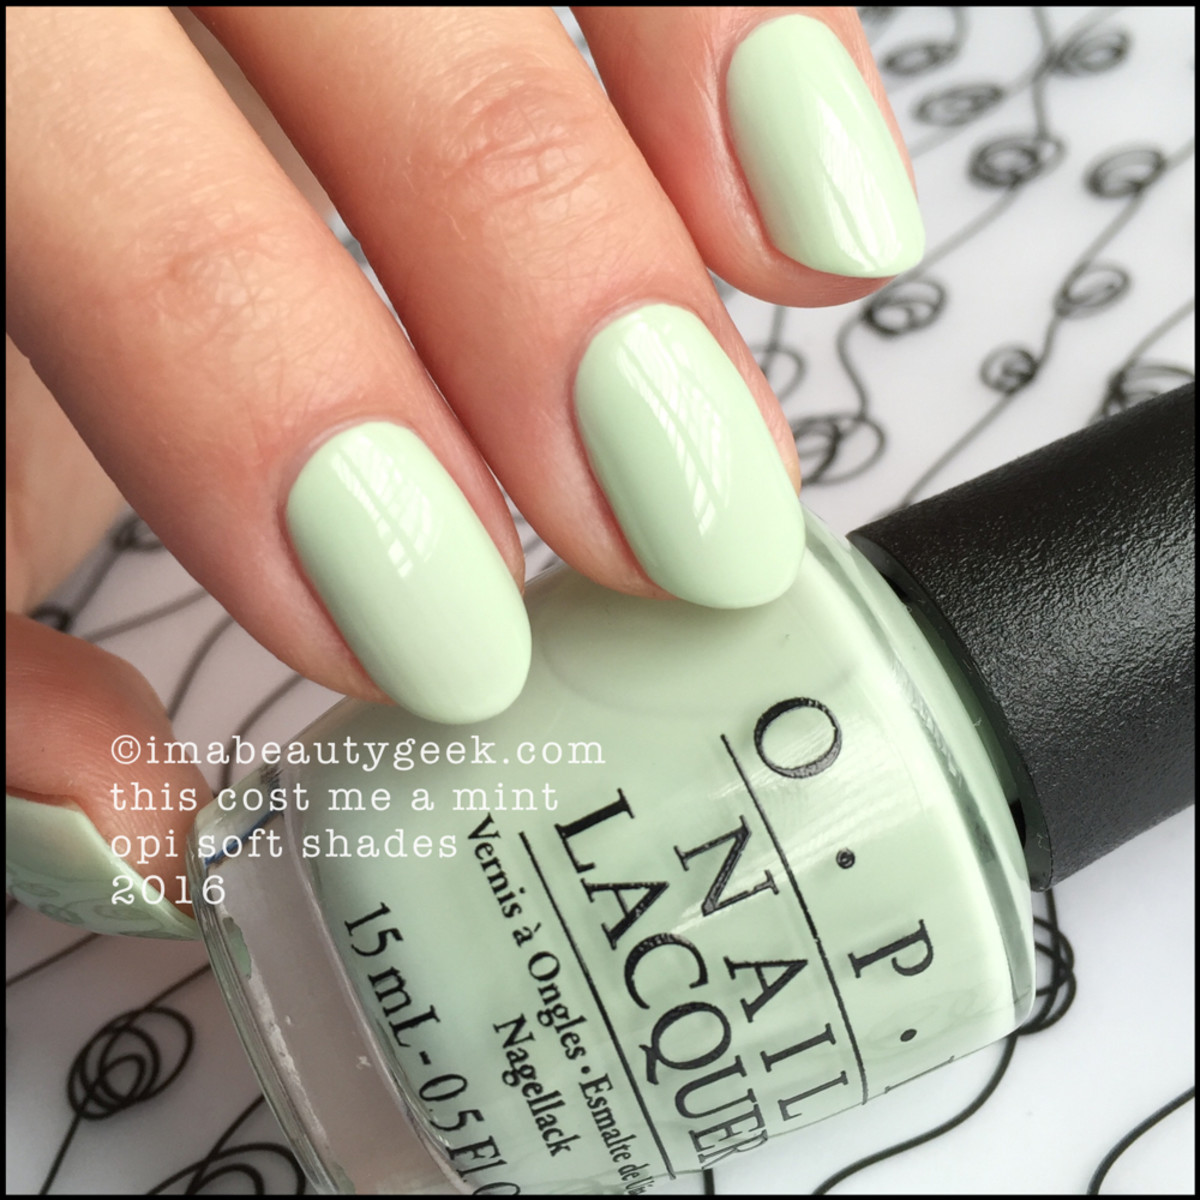 OPI This Cost Me A Mint_OPI Soft Shades 2016 Pastels Swatches